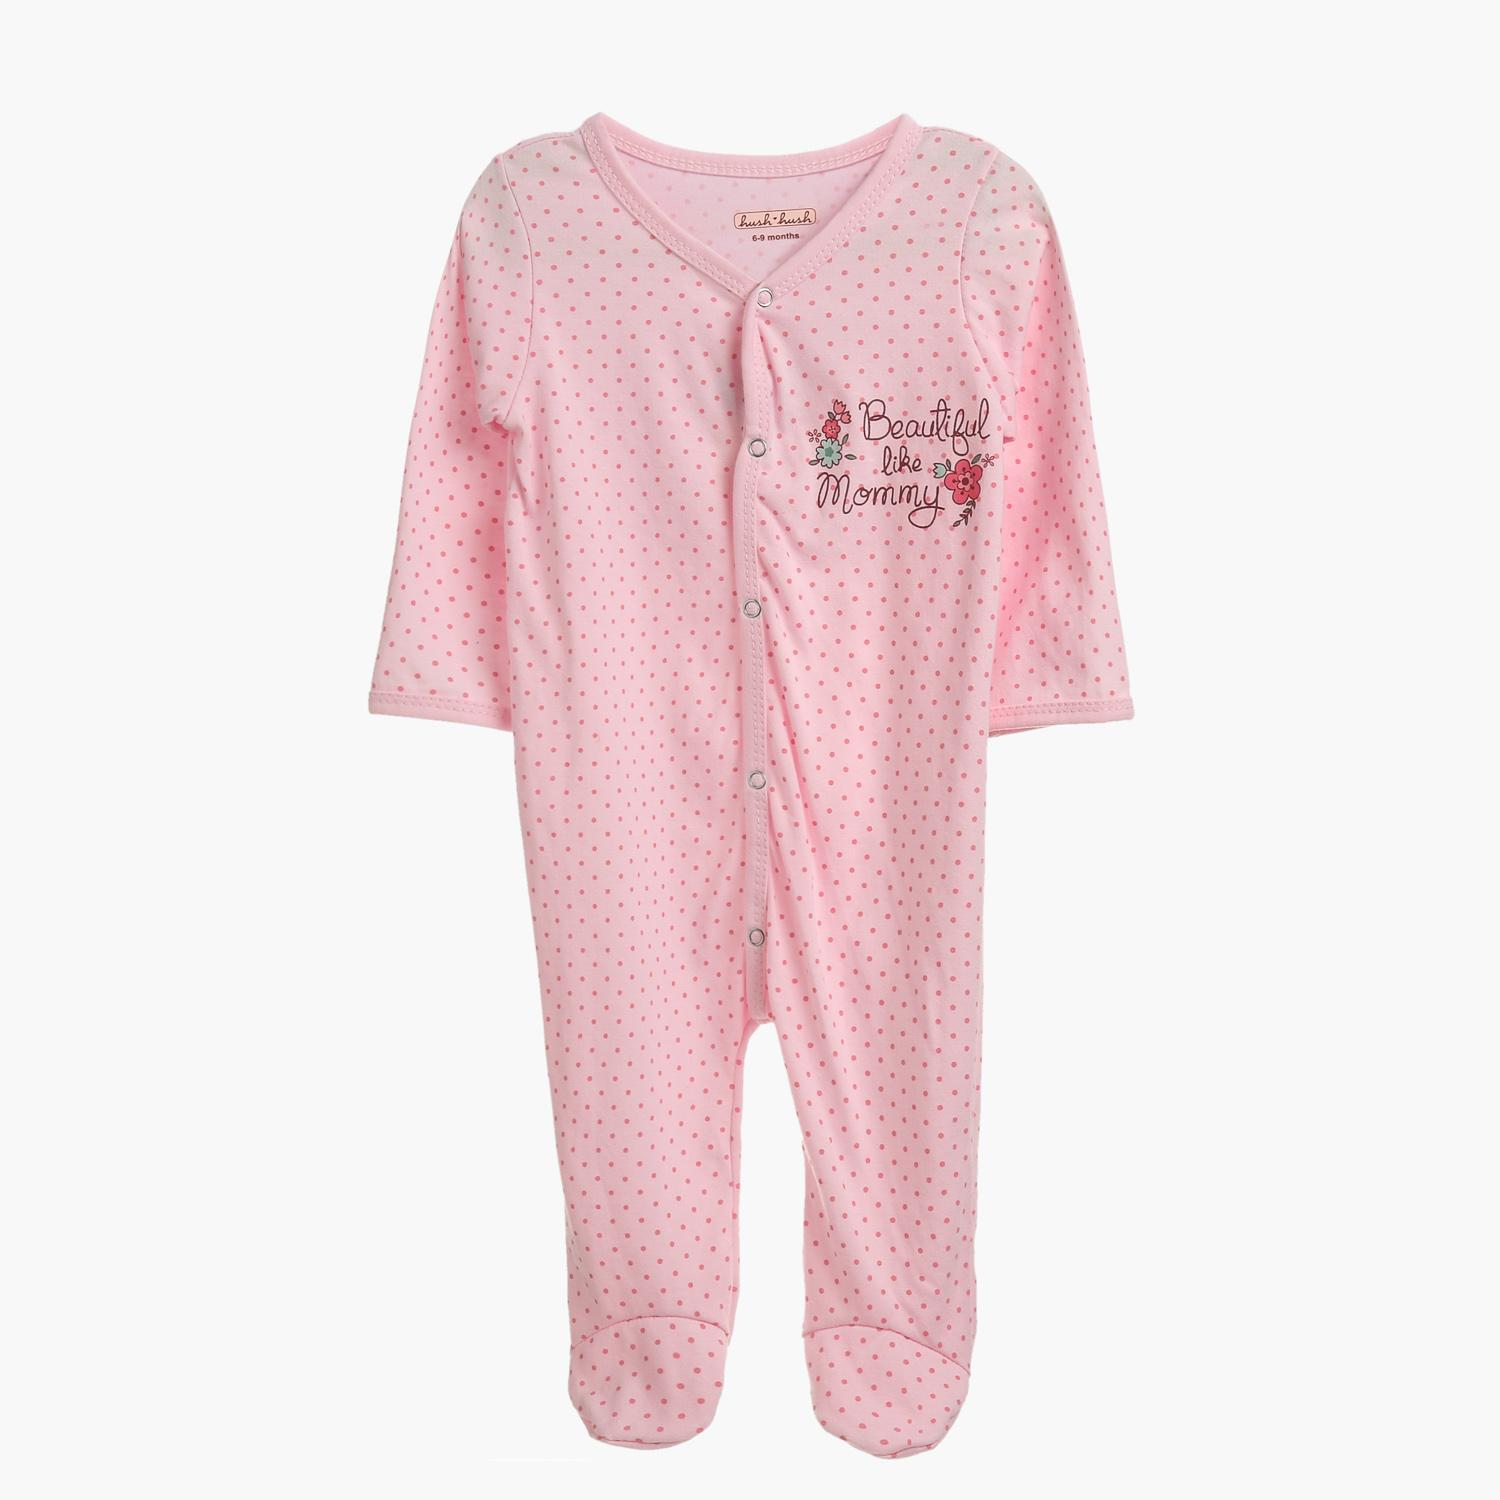 77f8d14894f Young Girls Clothing for sale - Baby Clothing for Girls online ...